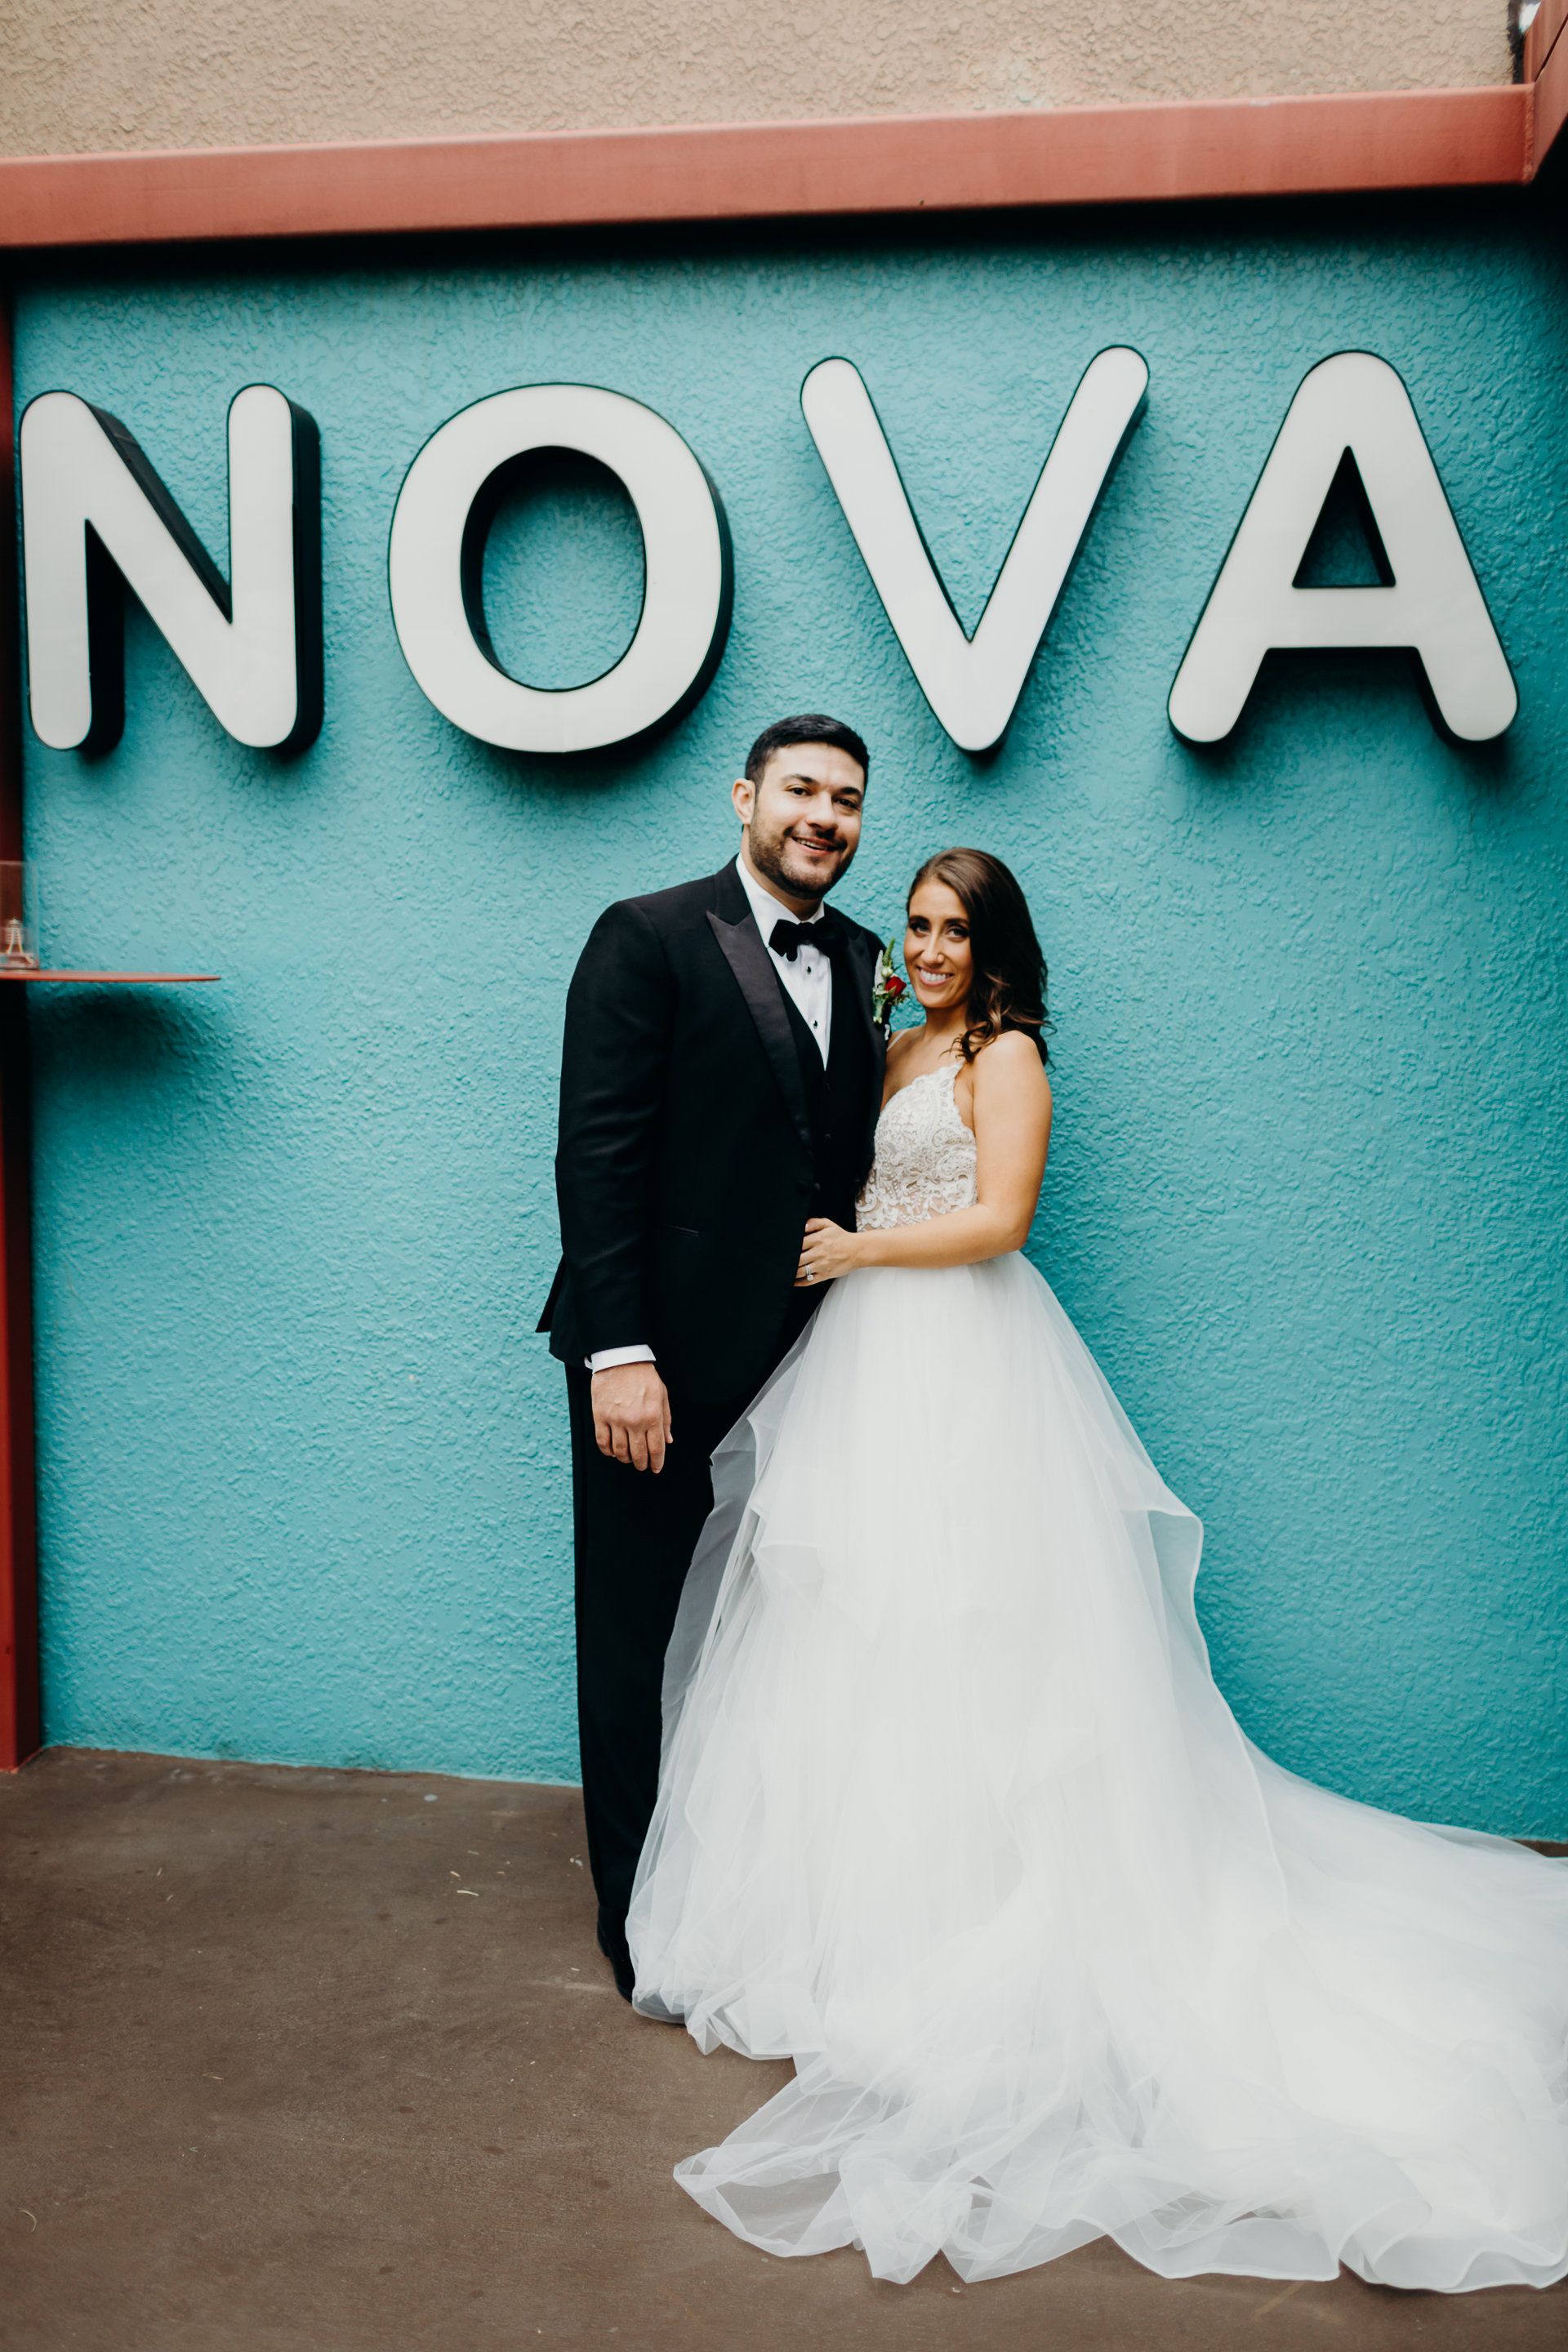 Gianna Keiko Atlanta San Francisco NYC Wedding Engagement Wedding Elopement Photographer_Sneak Peek-12.jpg